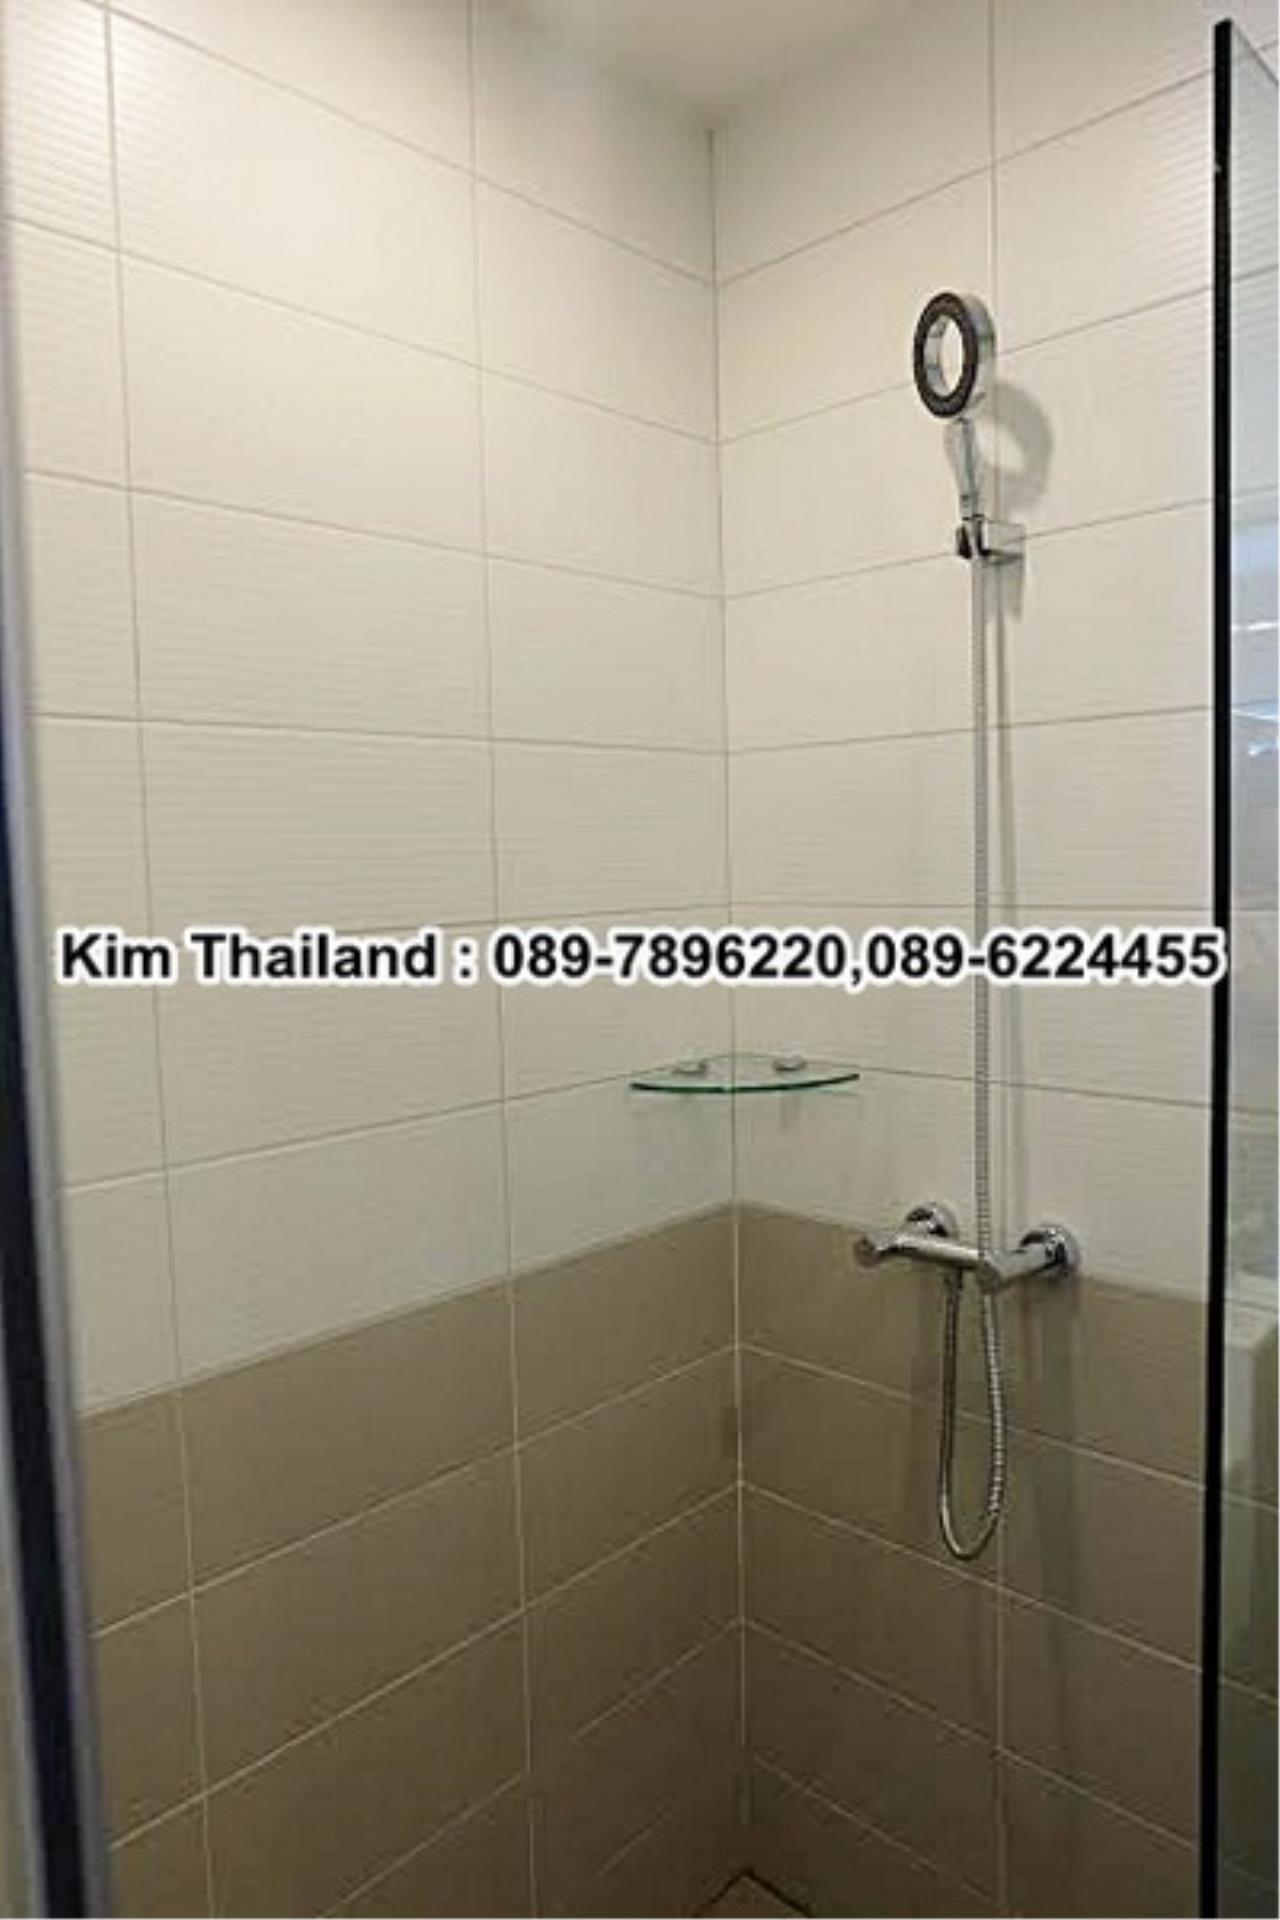 BKKcondorental Agency's Condo for rent,Condo Ideo Q Samyan. Area 29 sqm. 1 bedroom.  Rent 23,000 baht /month. 2